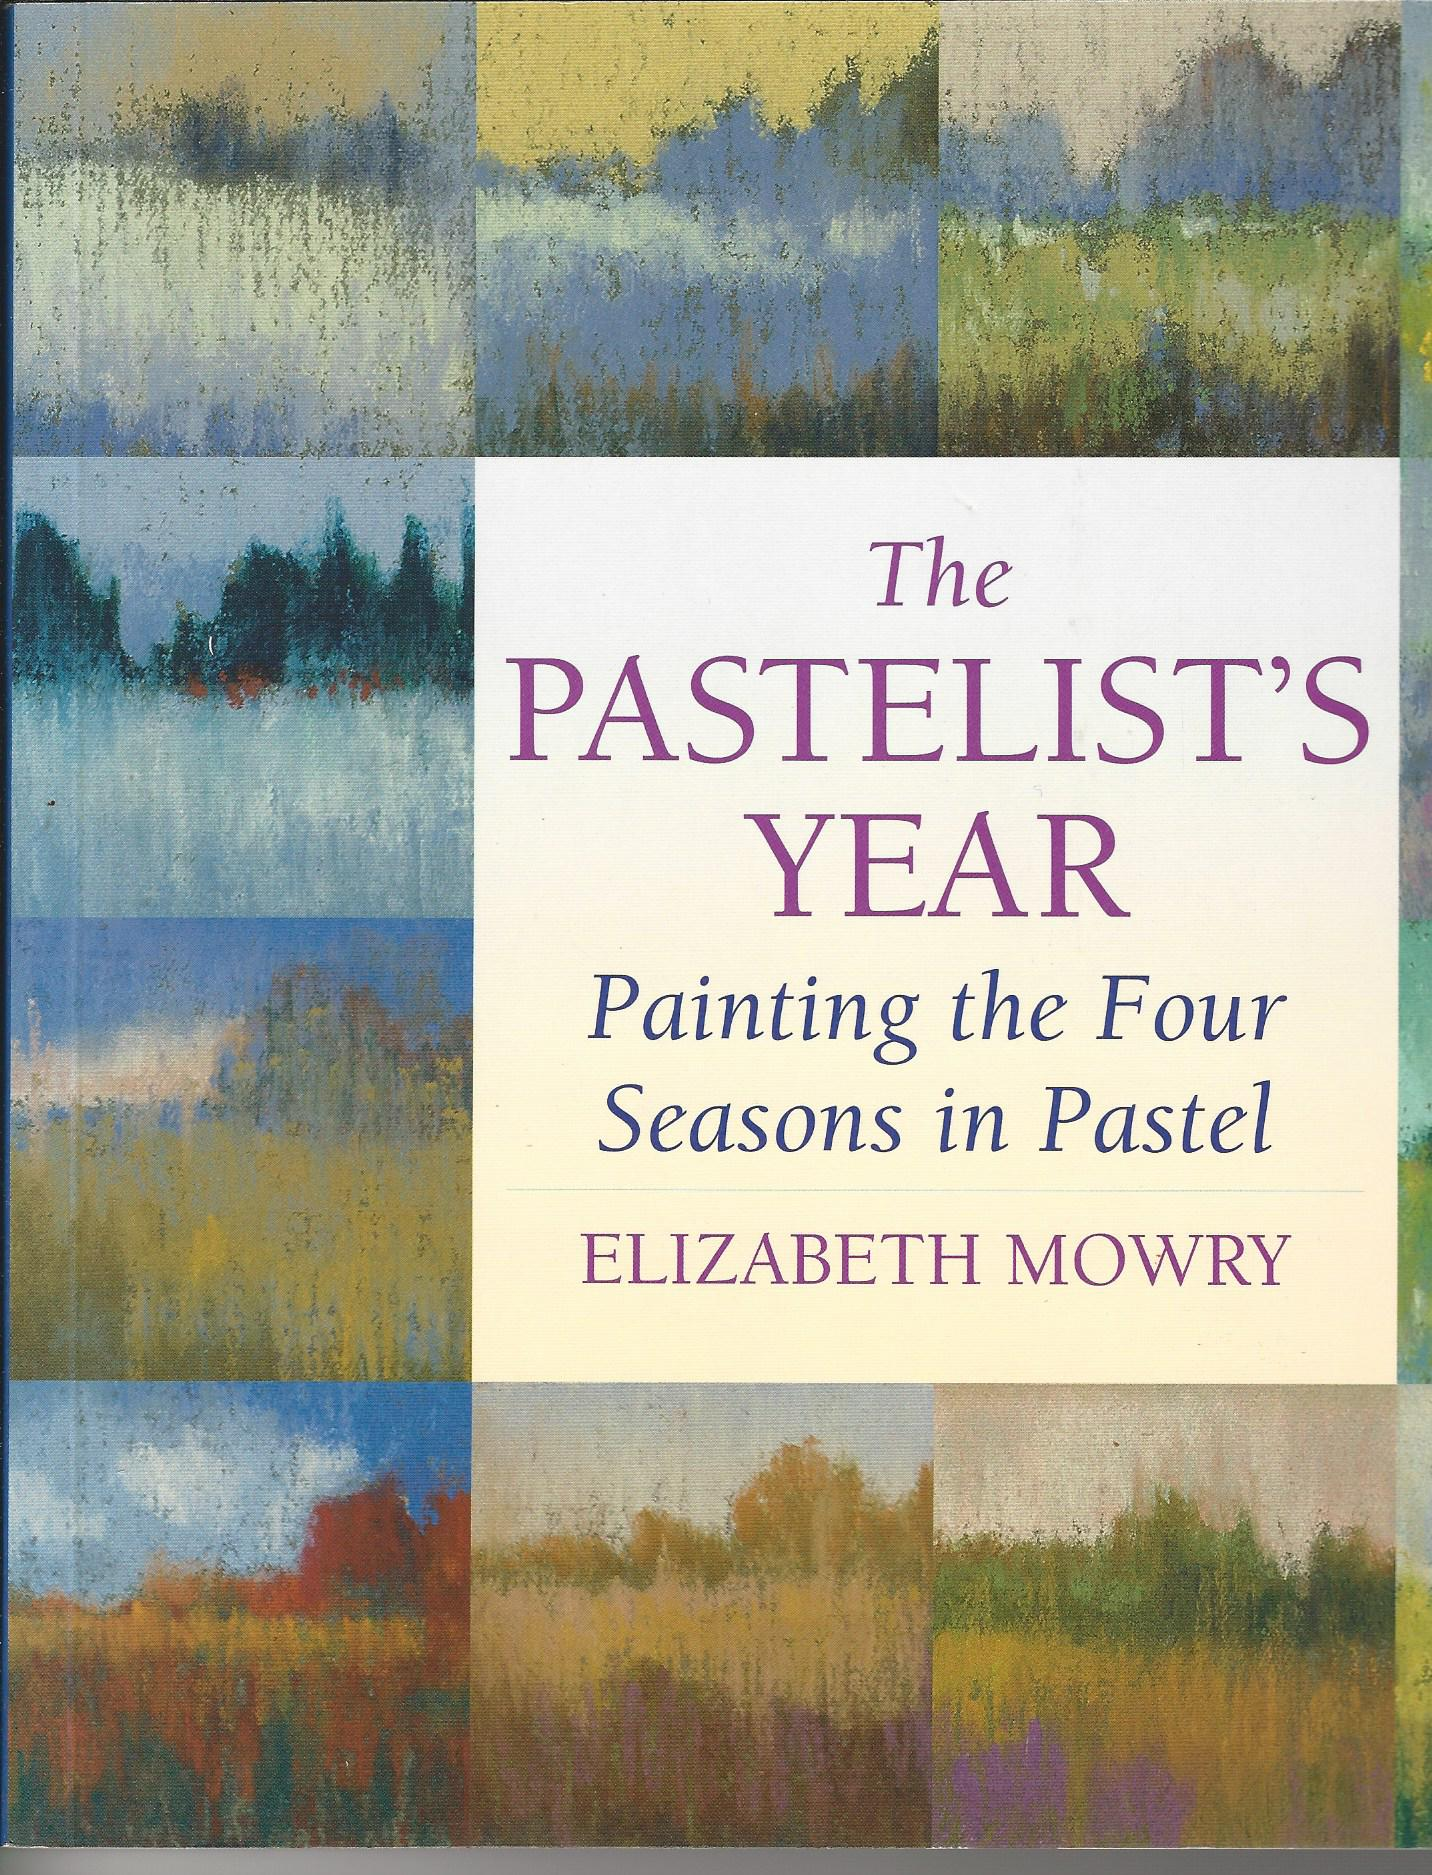 Image for The Pastelist's Year: Painting the Four Seasons in Pastel.